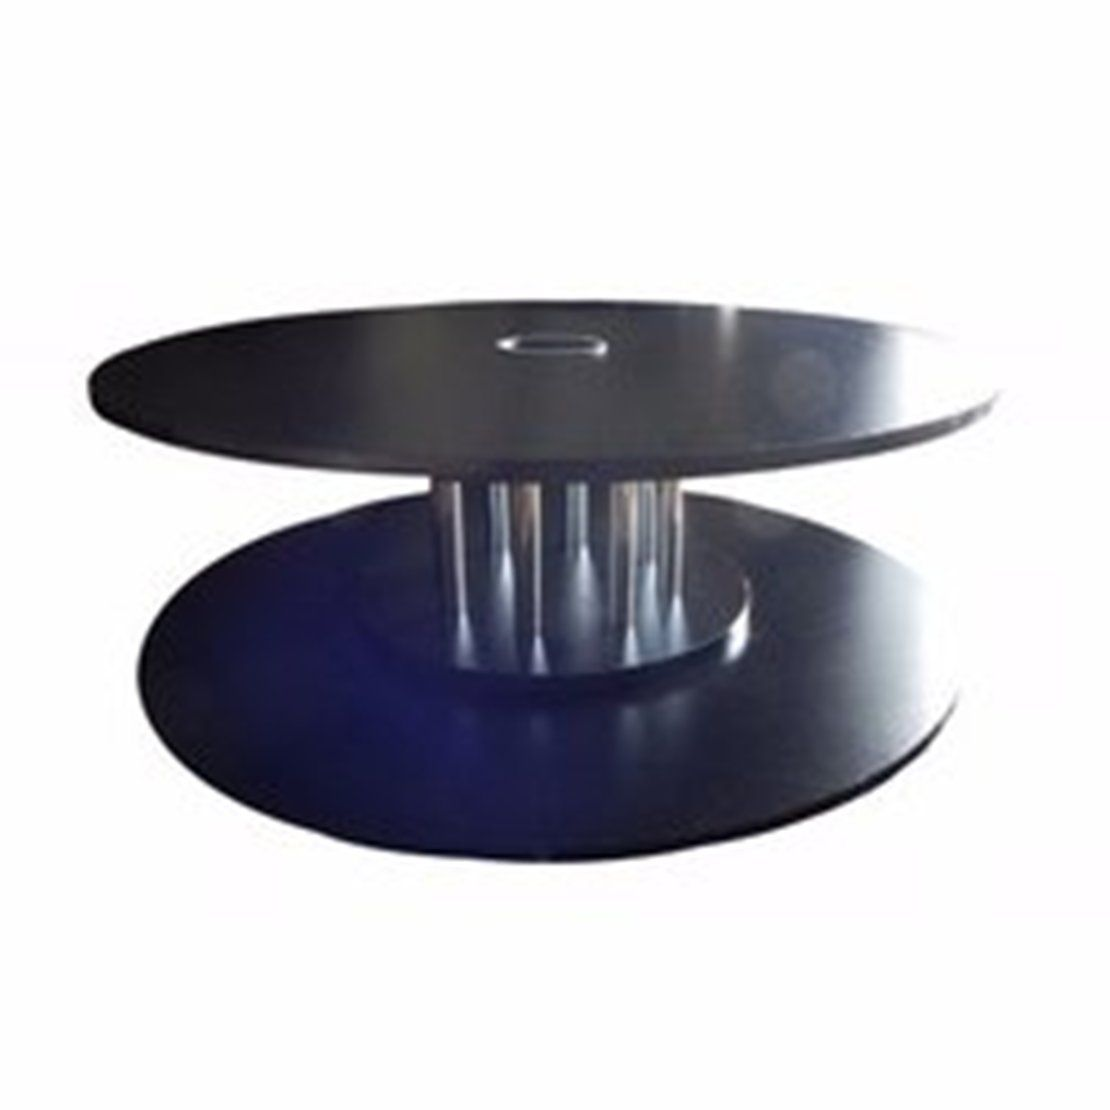 Black jewel center table delivery only in lagos buy online jumia nigeria - Jumia office address in lagos ...